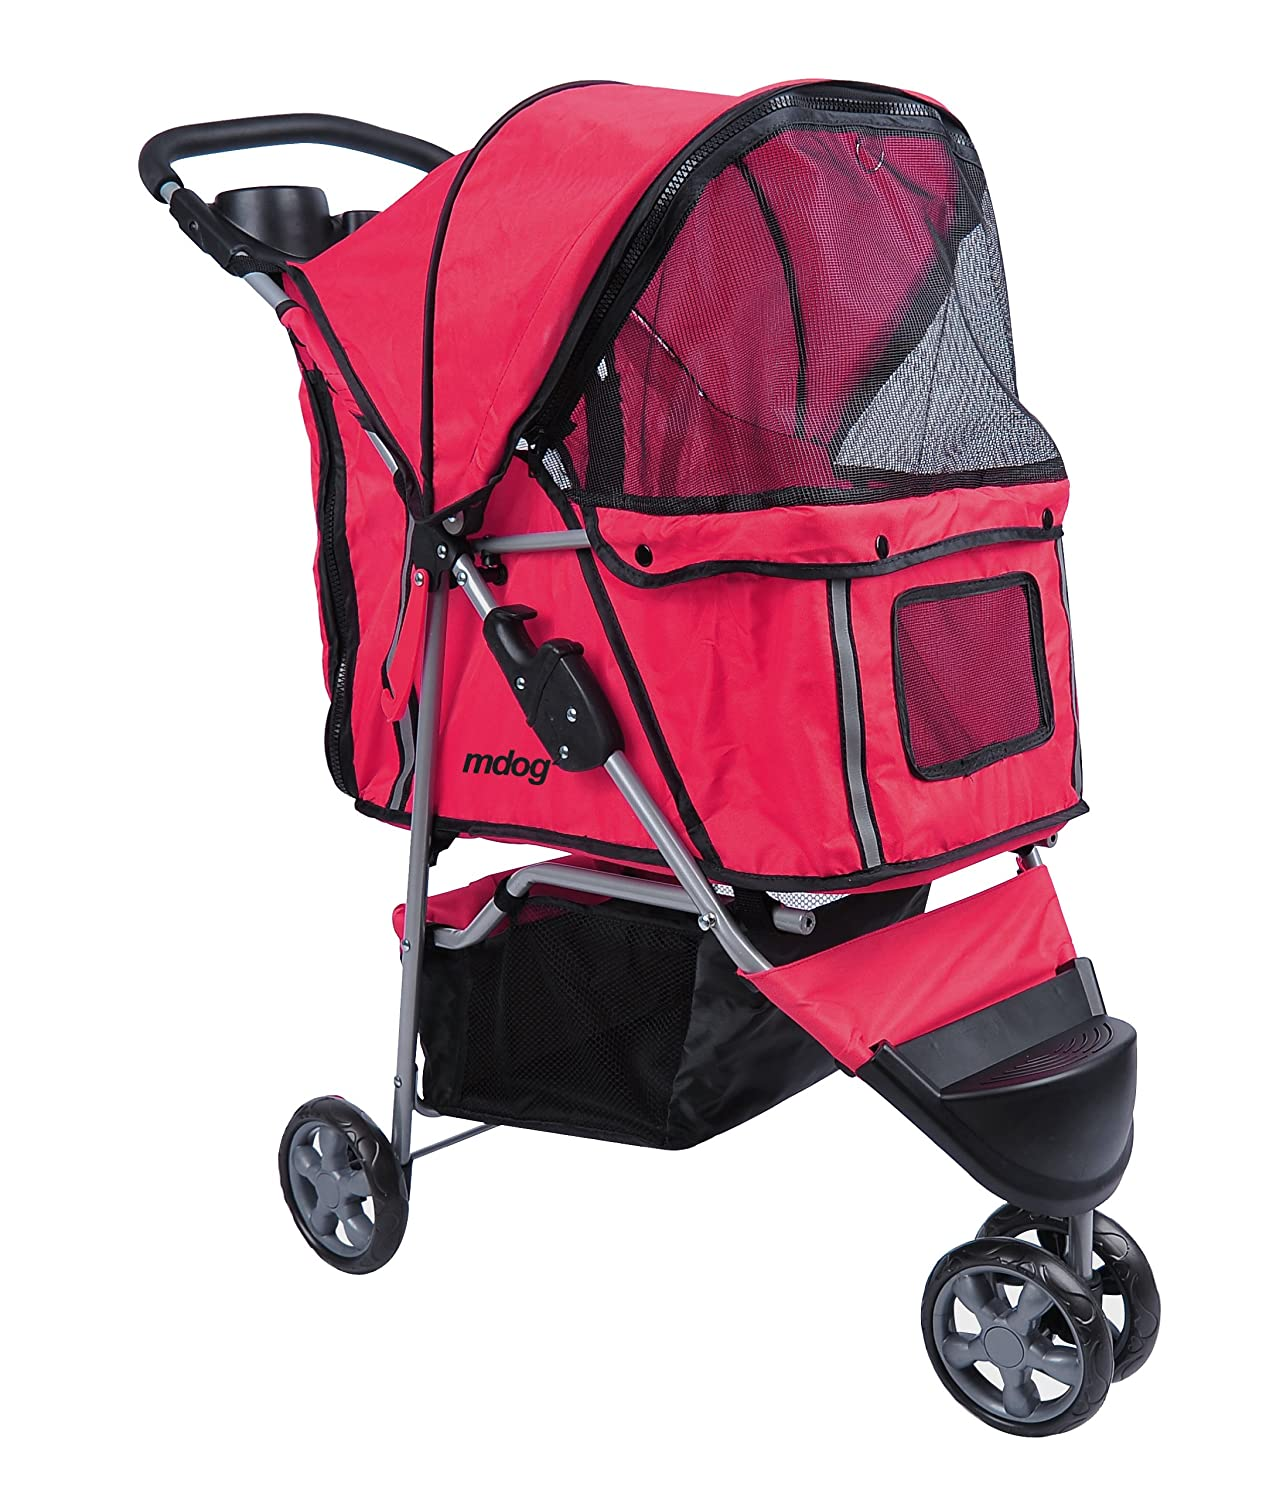 MDOG2 MK0015A 3-Wheel Front and Rear Entry Pet Stroller, Red